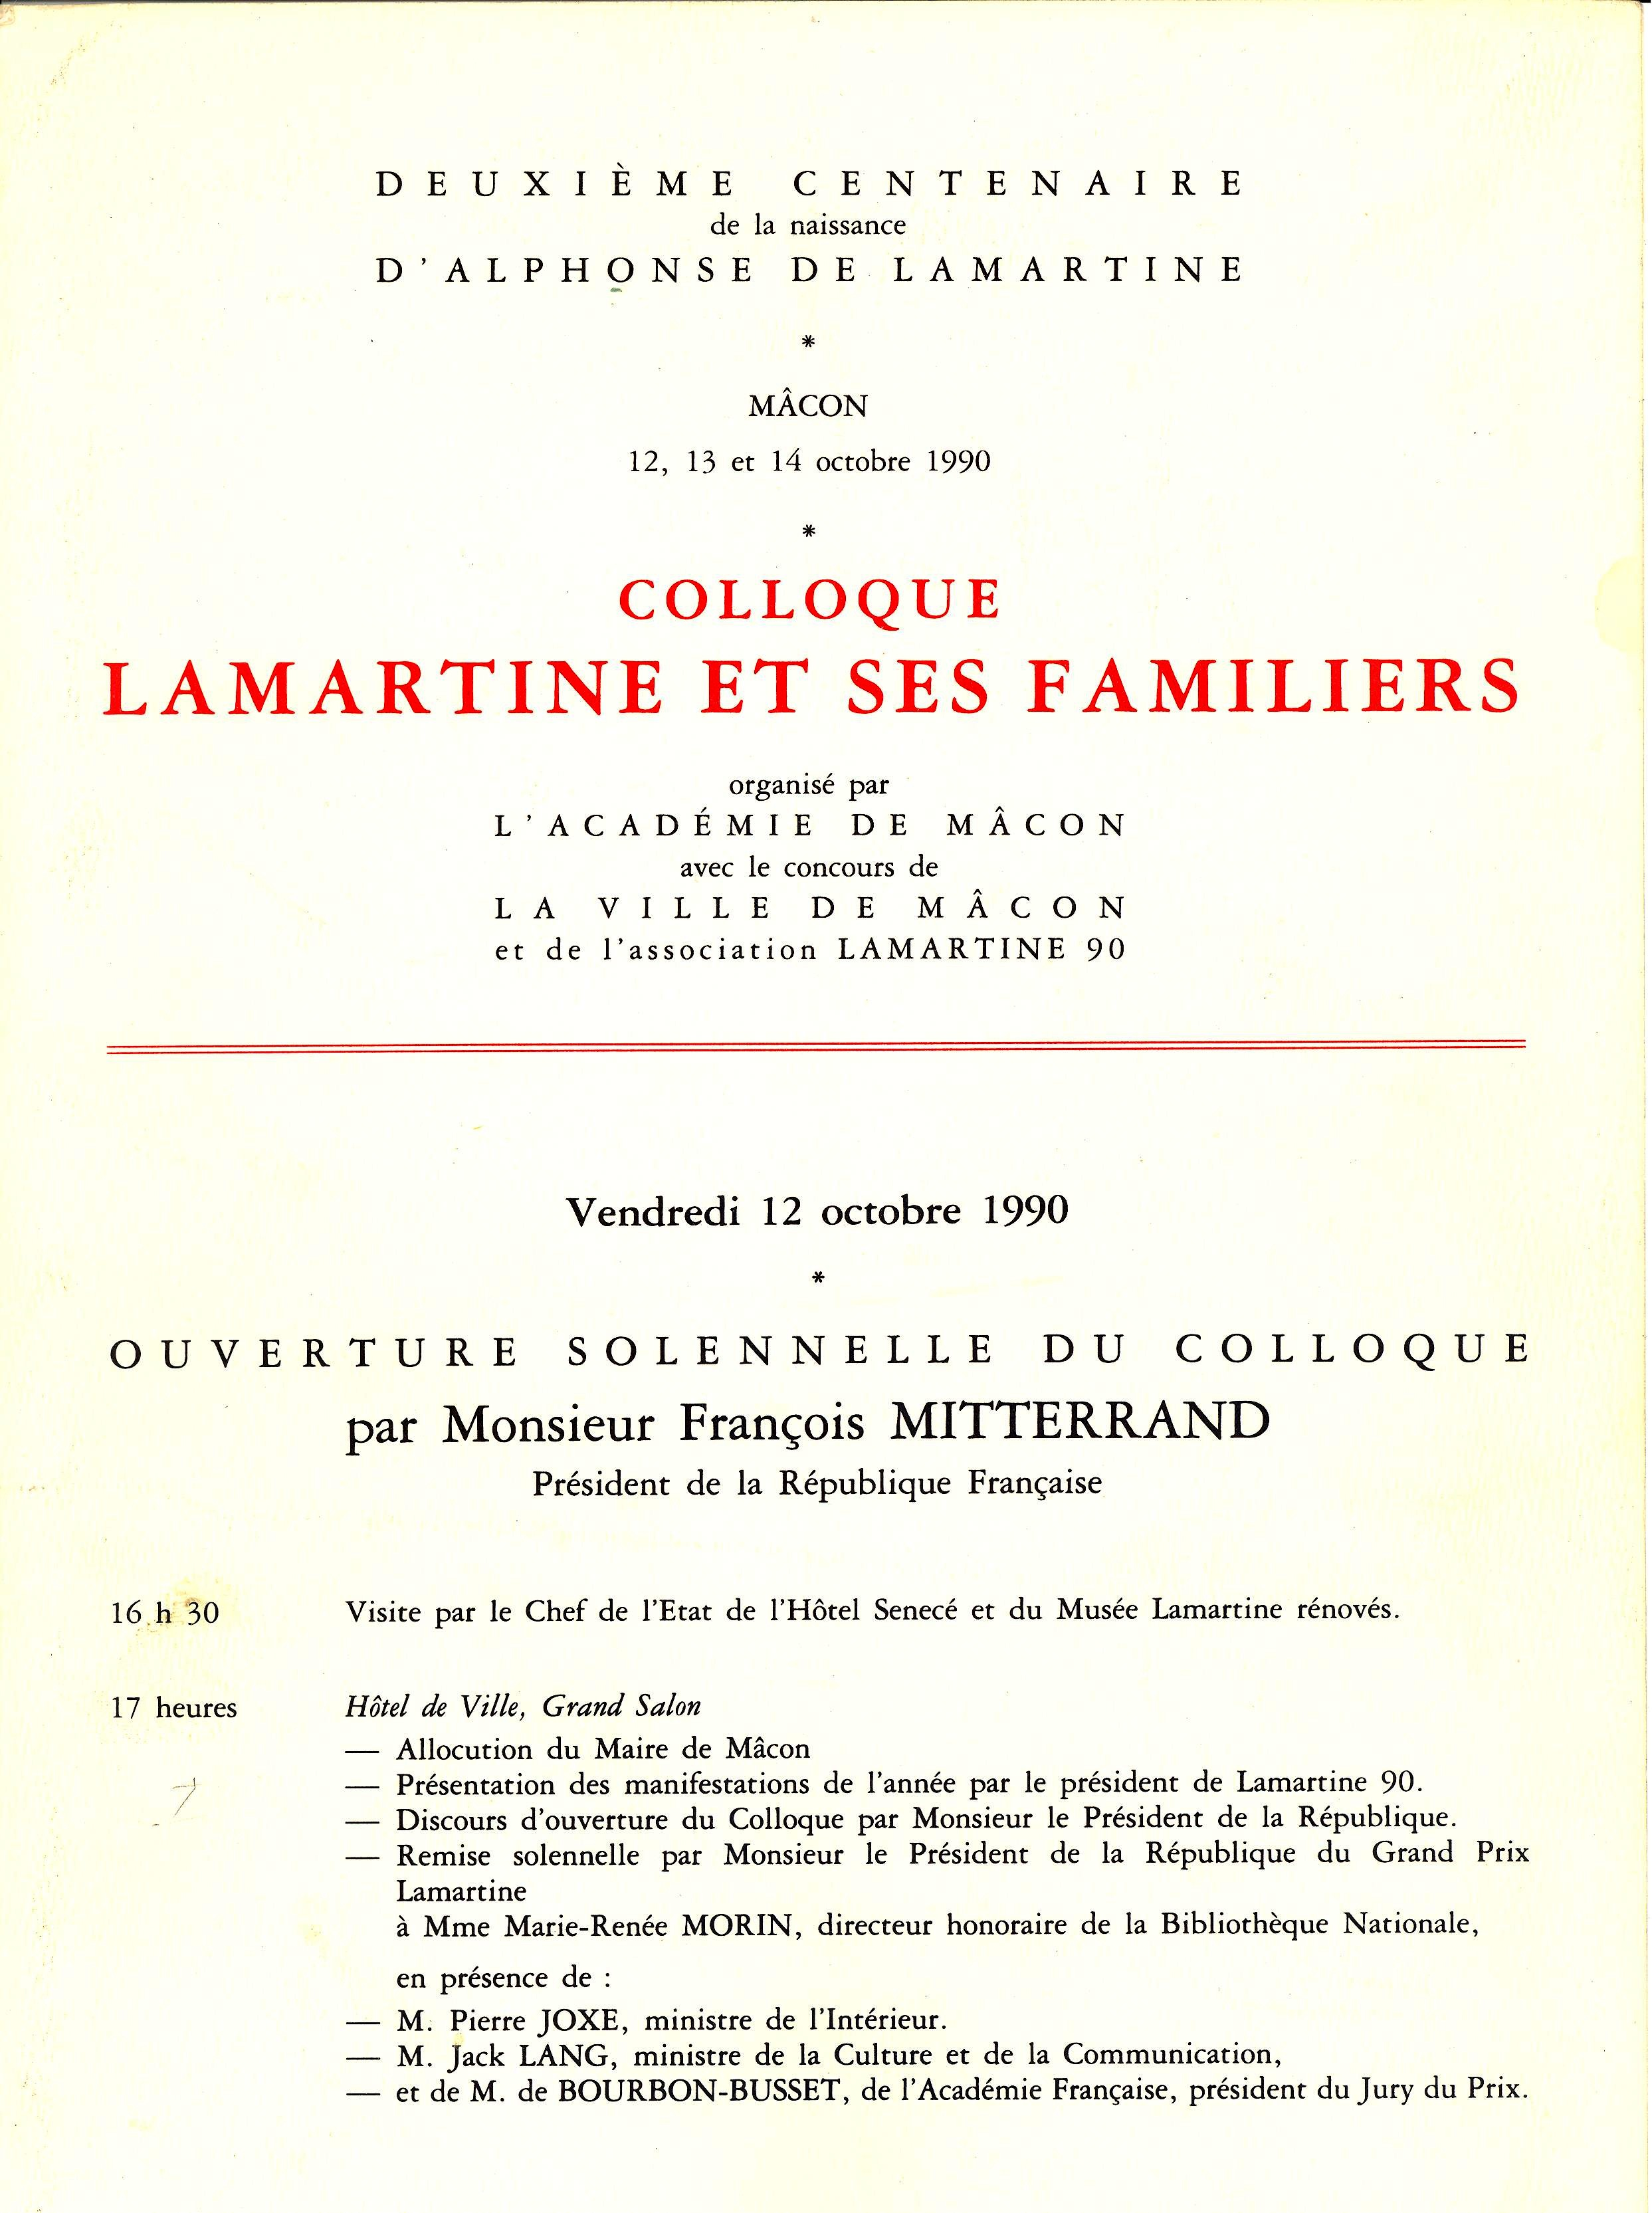 COLLOQUE LAMARTINE